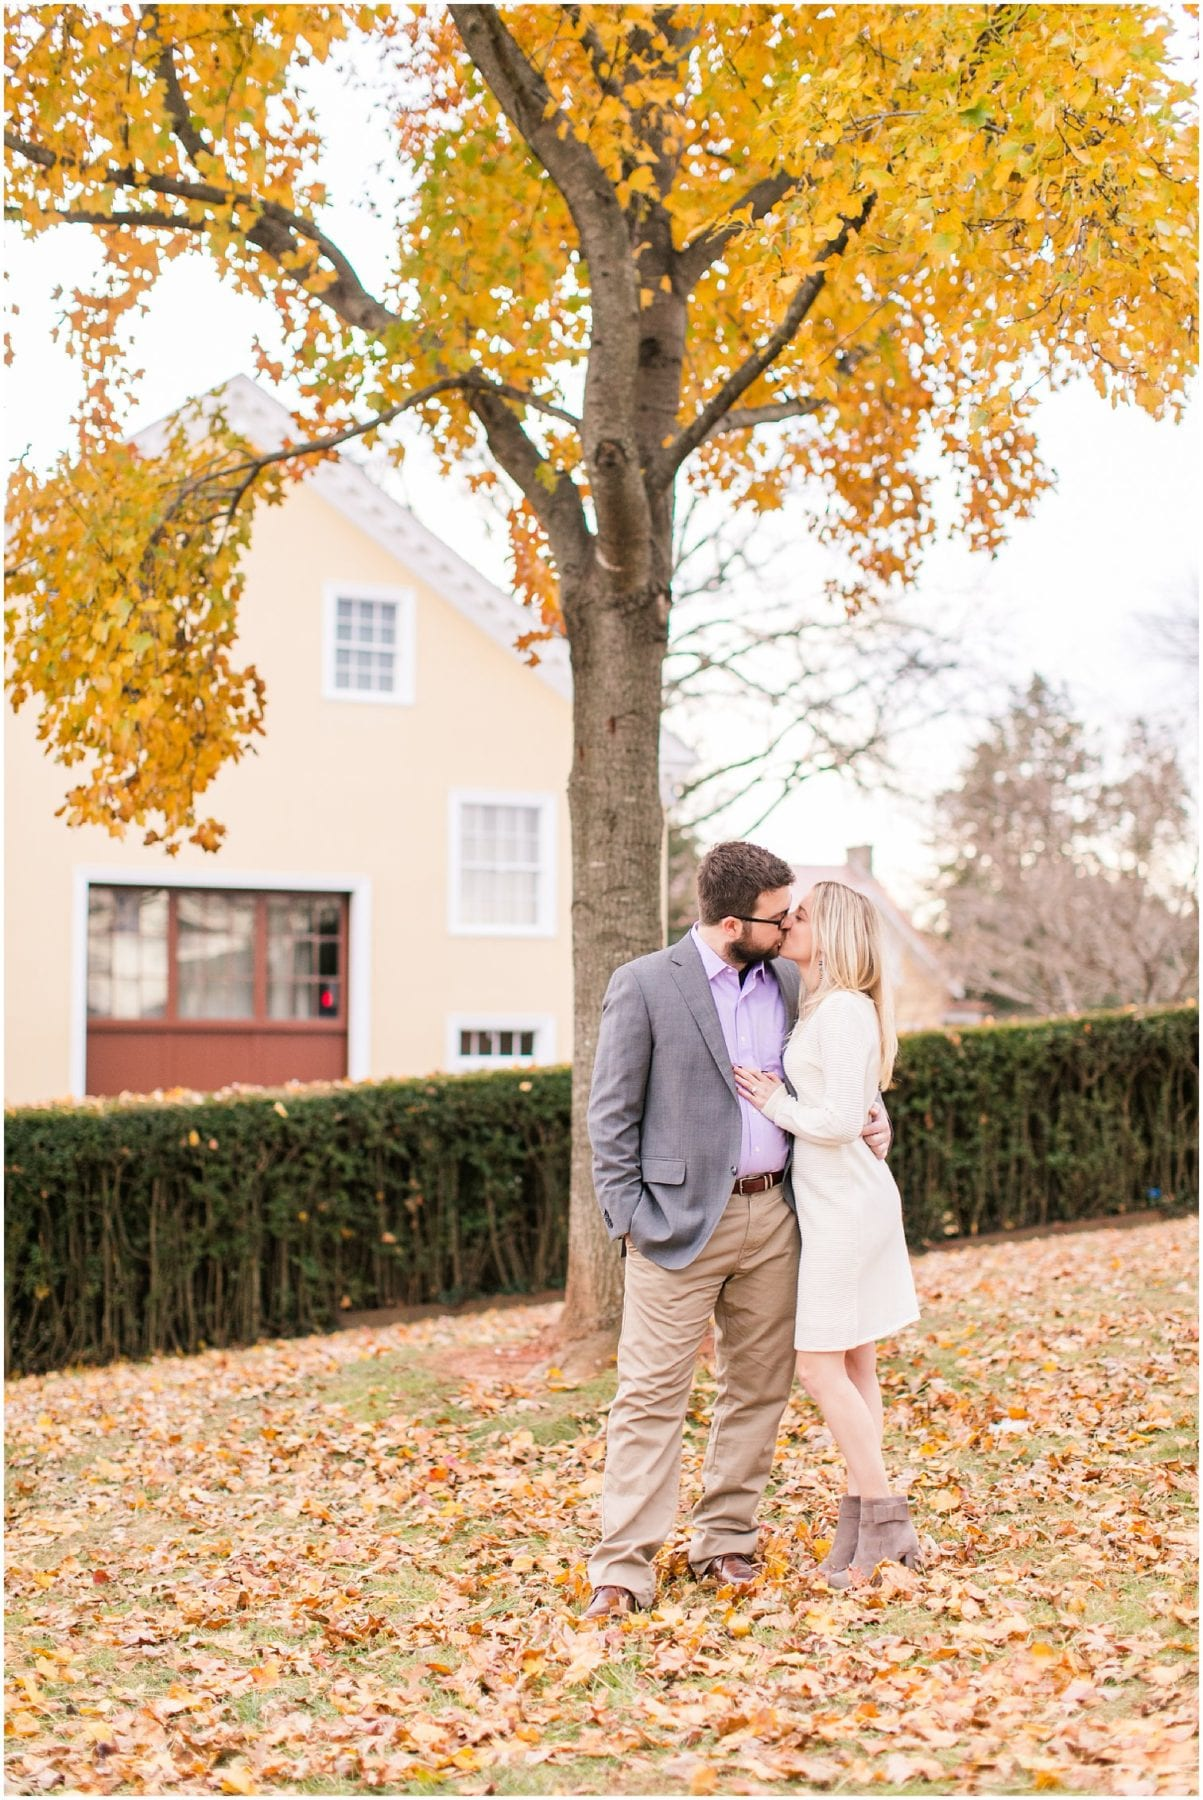 Downtown Middleburg Engagement Photos Virginia Wedding Photographer Megan Kelsey Photography Blair & Mike-196.jpg